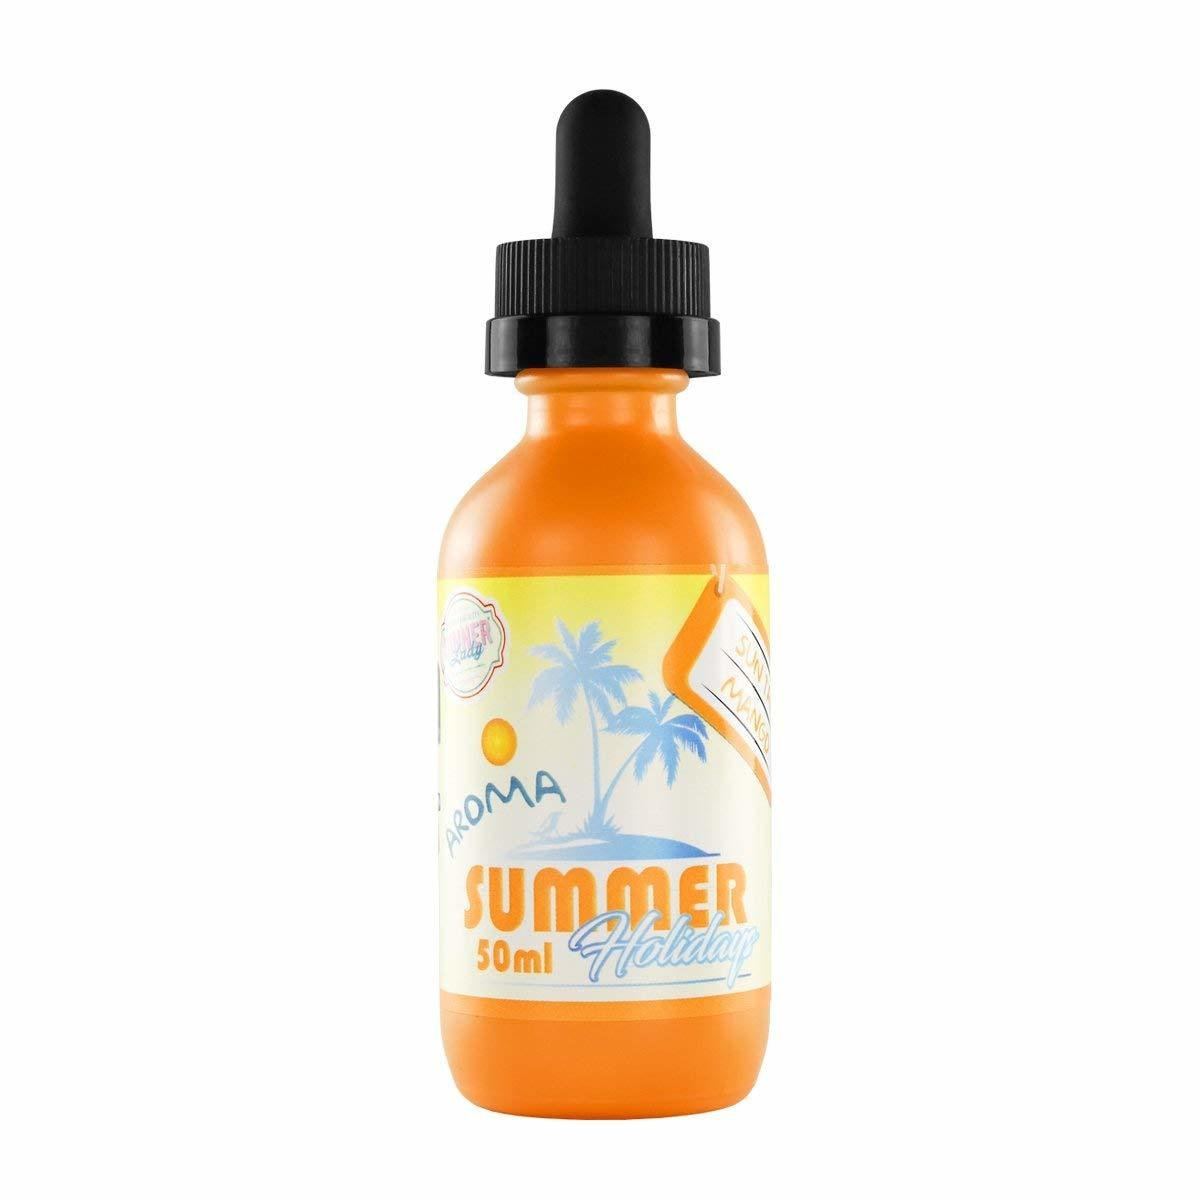 DINNER LADY SUMMER HOLIDAYS: TAN MANGO 60ML